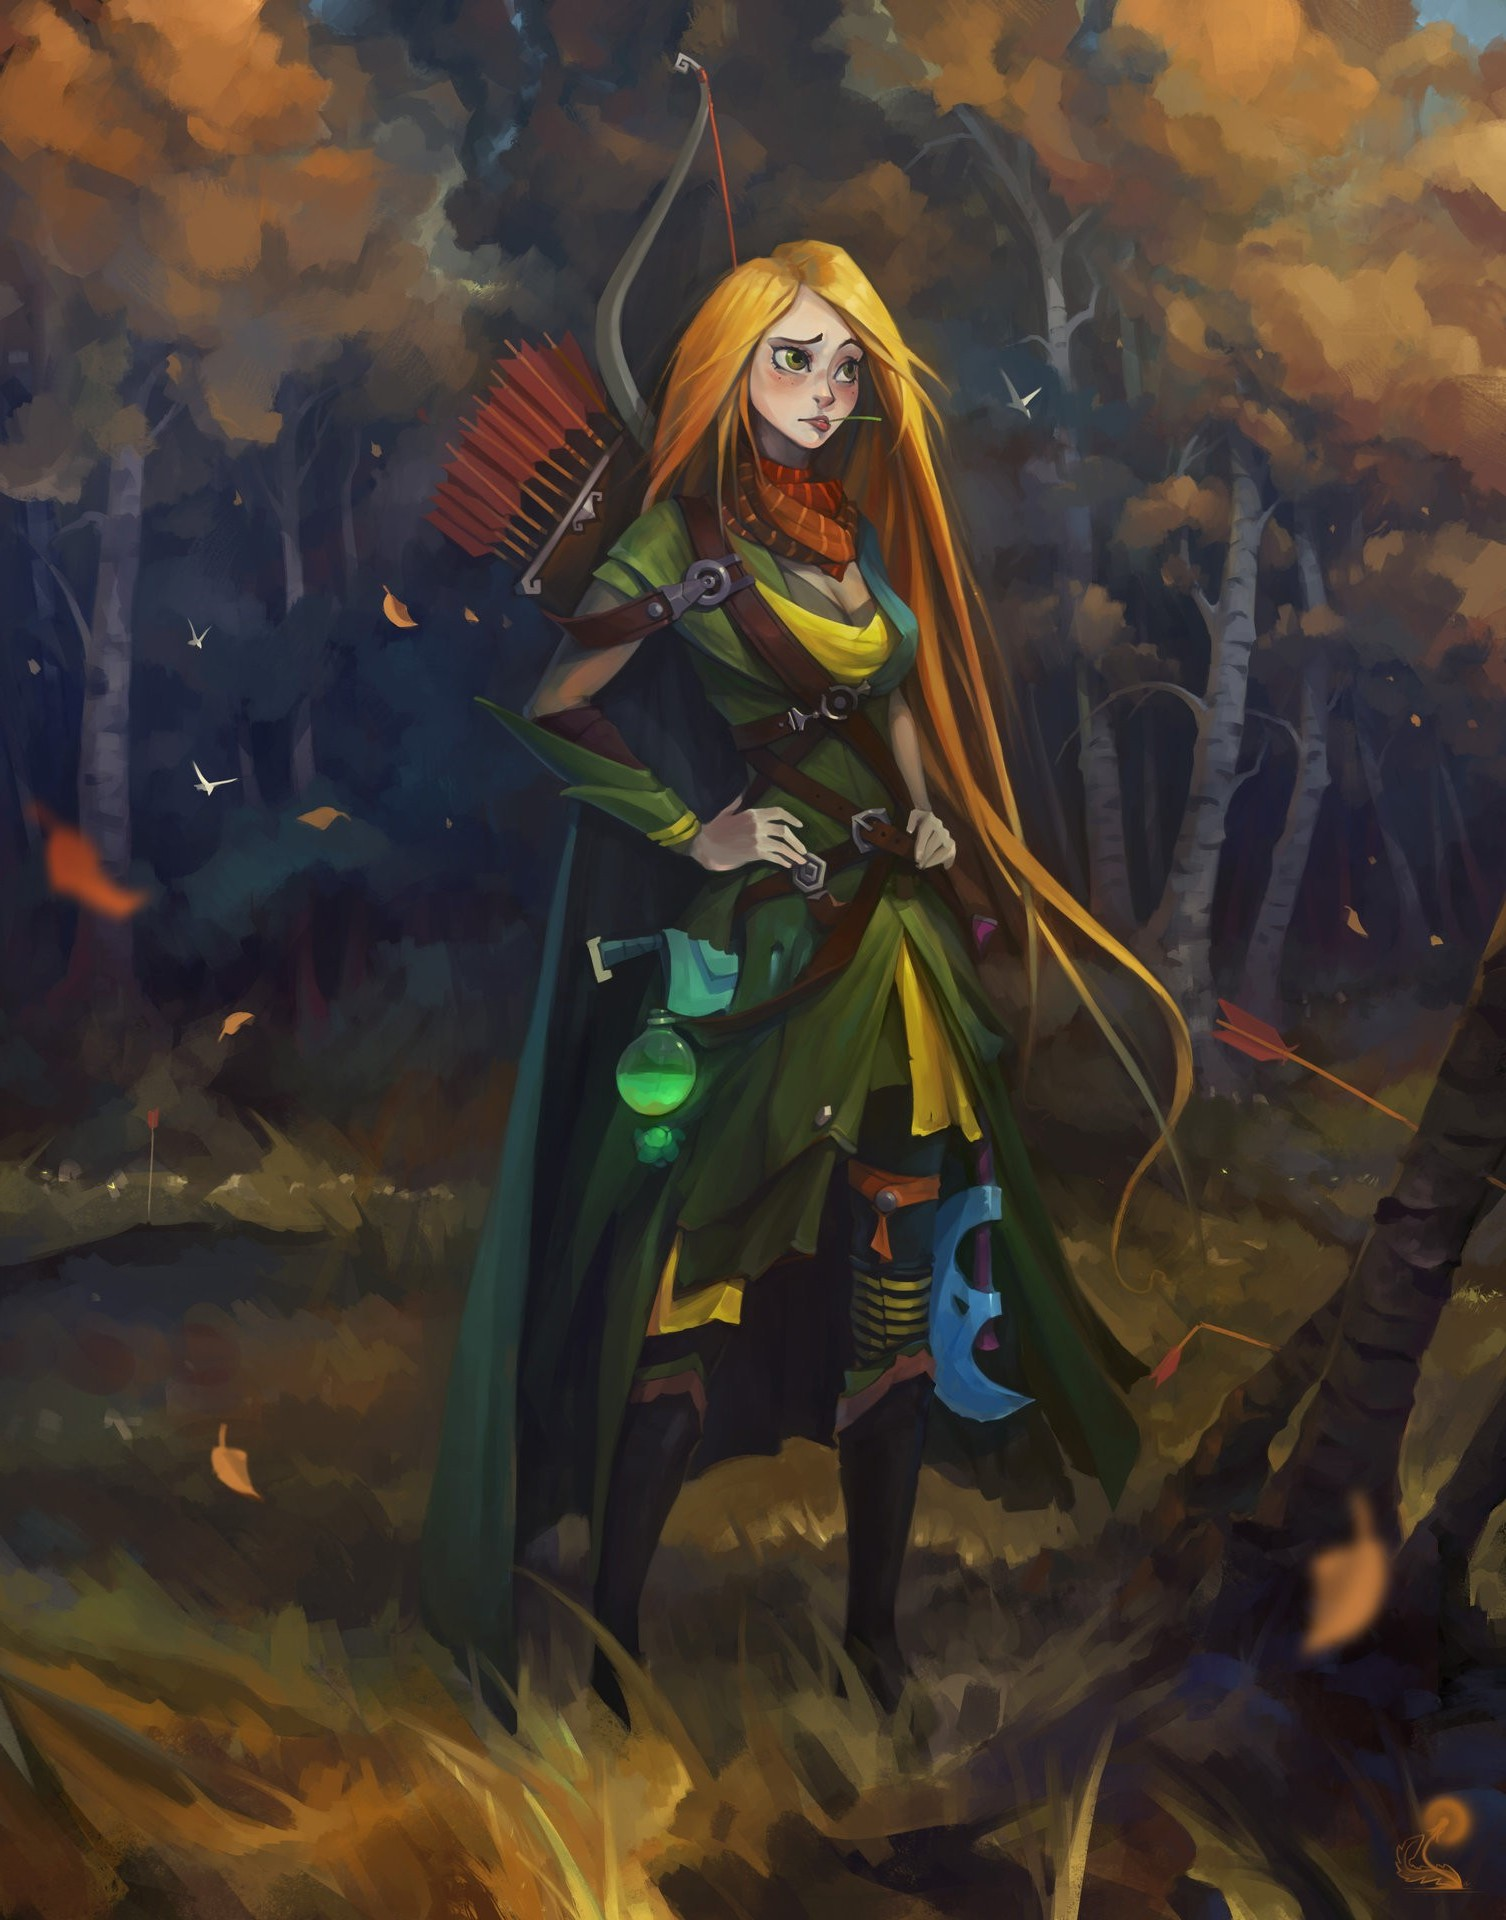 Fall Sunflower Desktop Wallpaper Dota 2 Windrunner Wallpapers Desktop Background Gaming